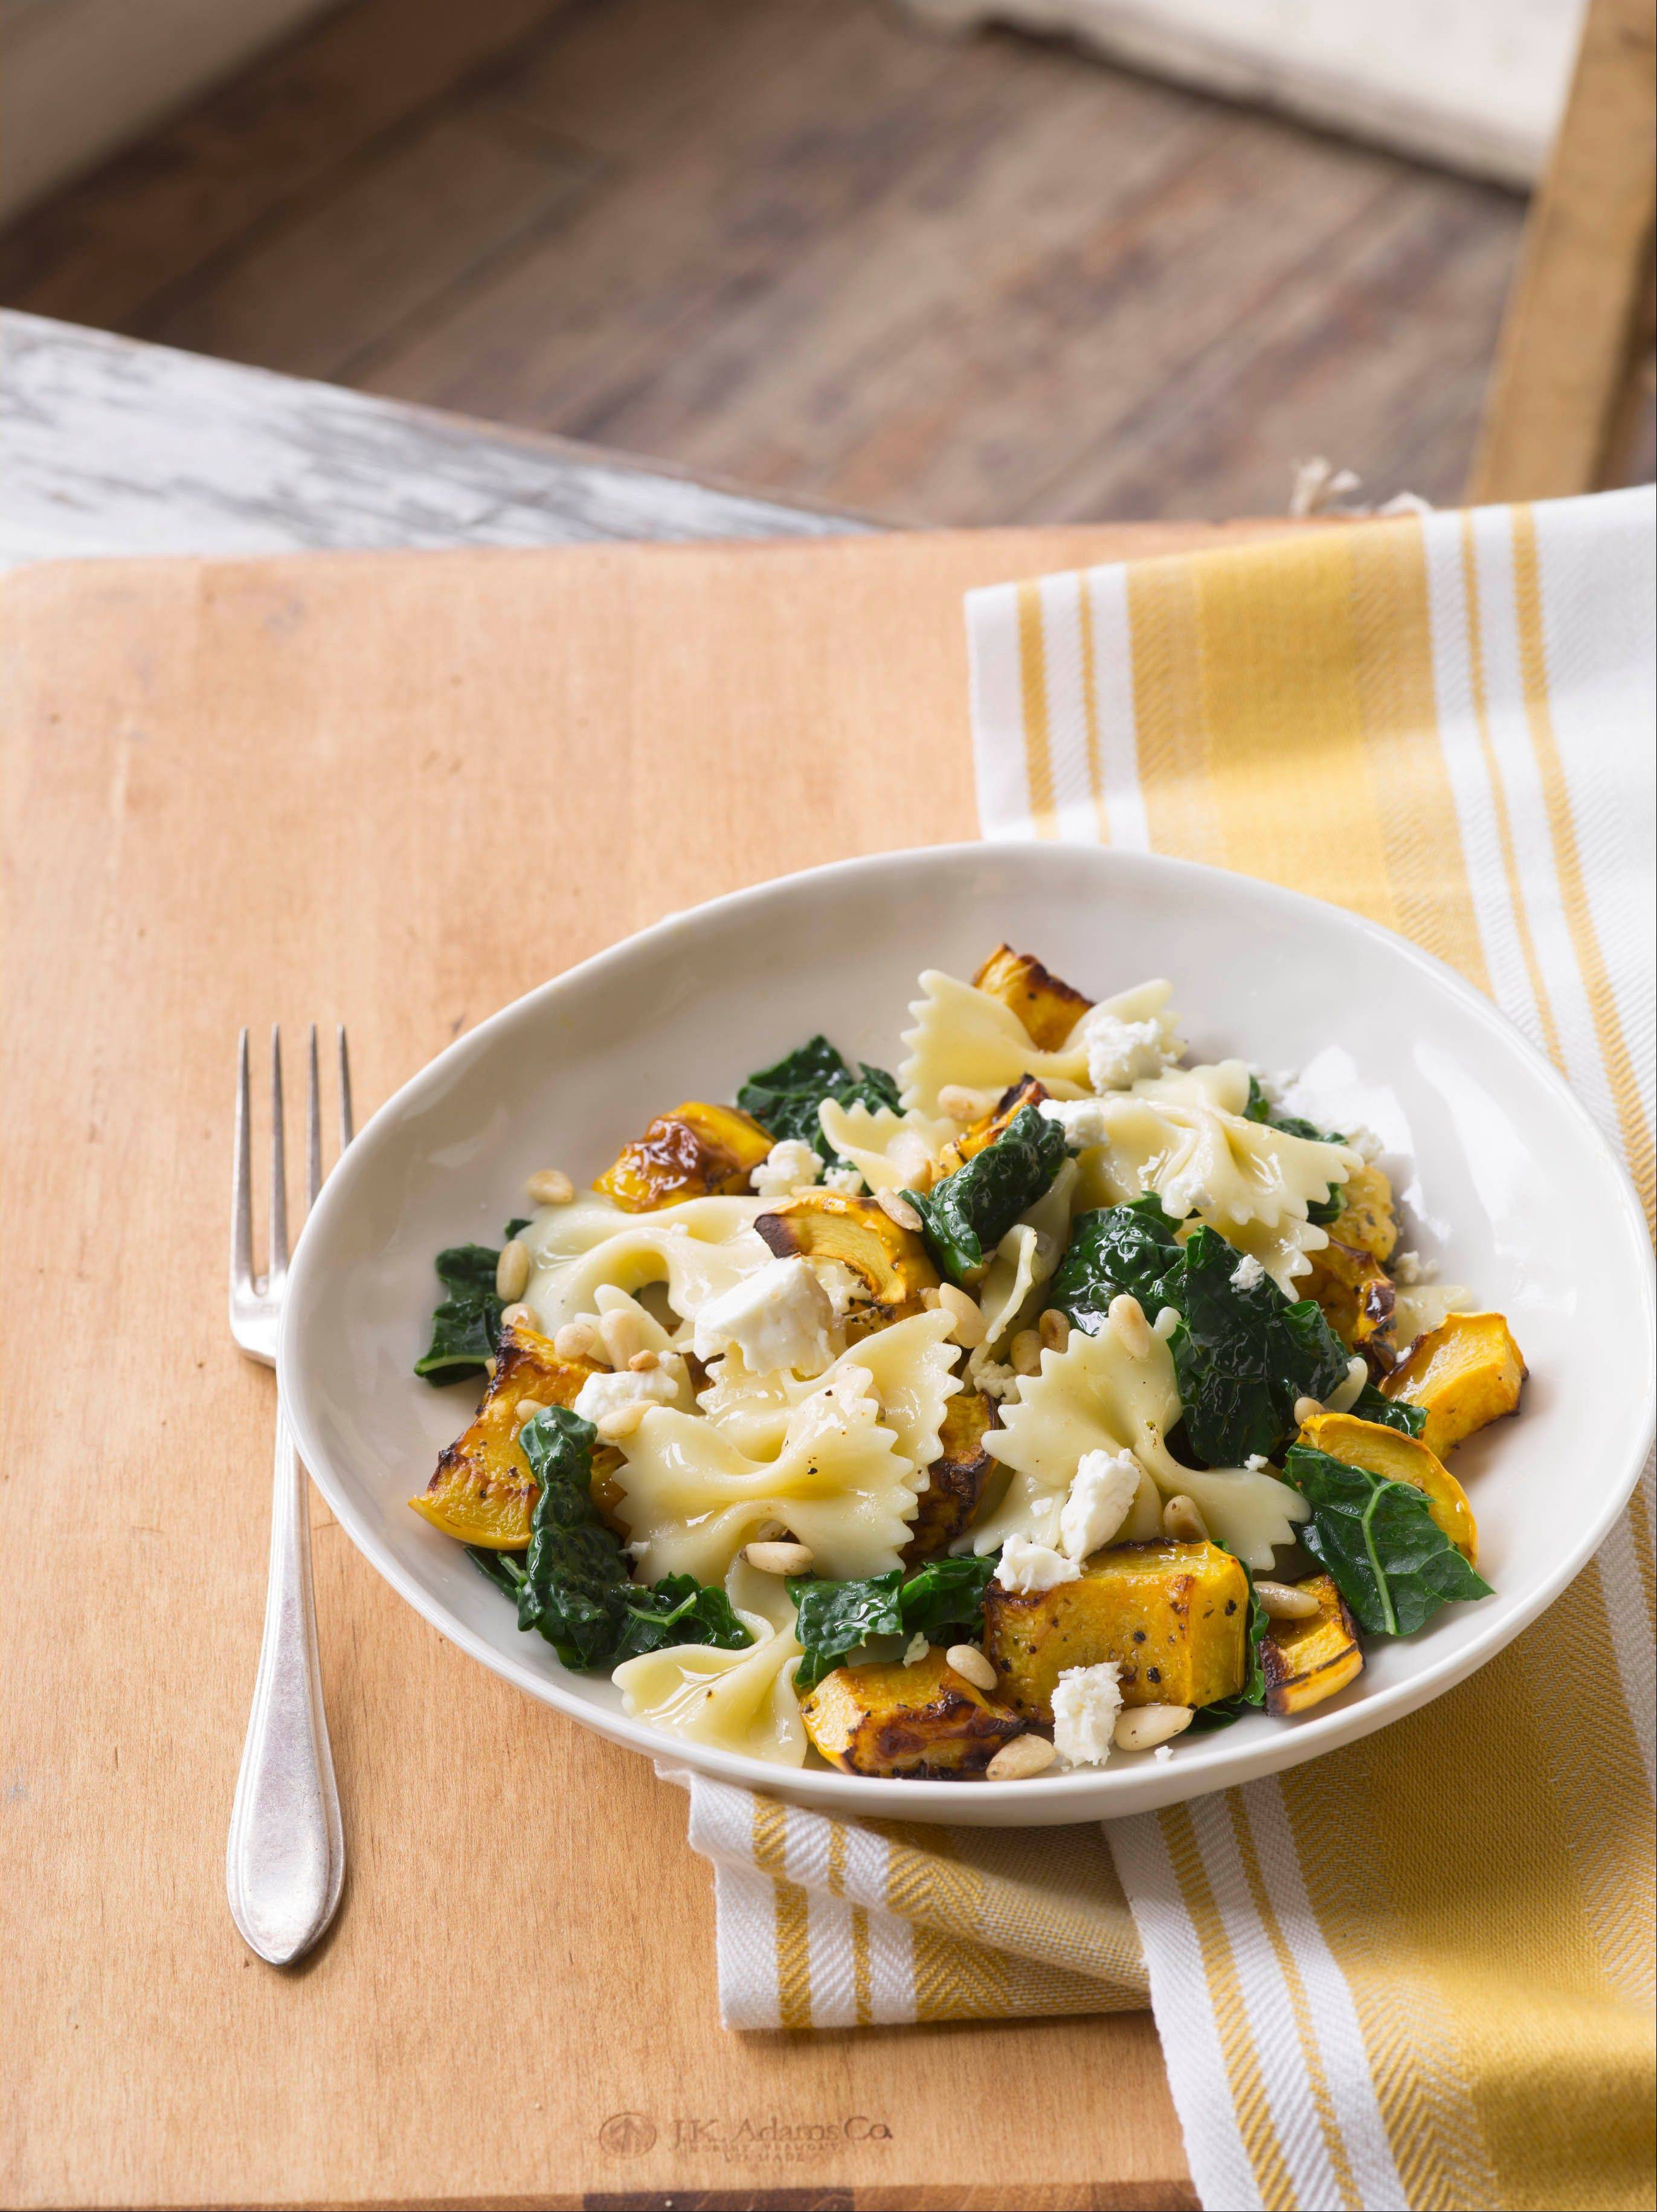 Roasted Delicata Squash with Tuscan Kale